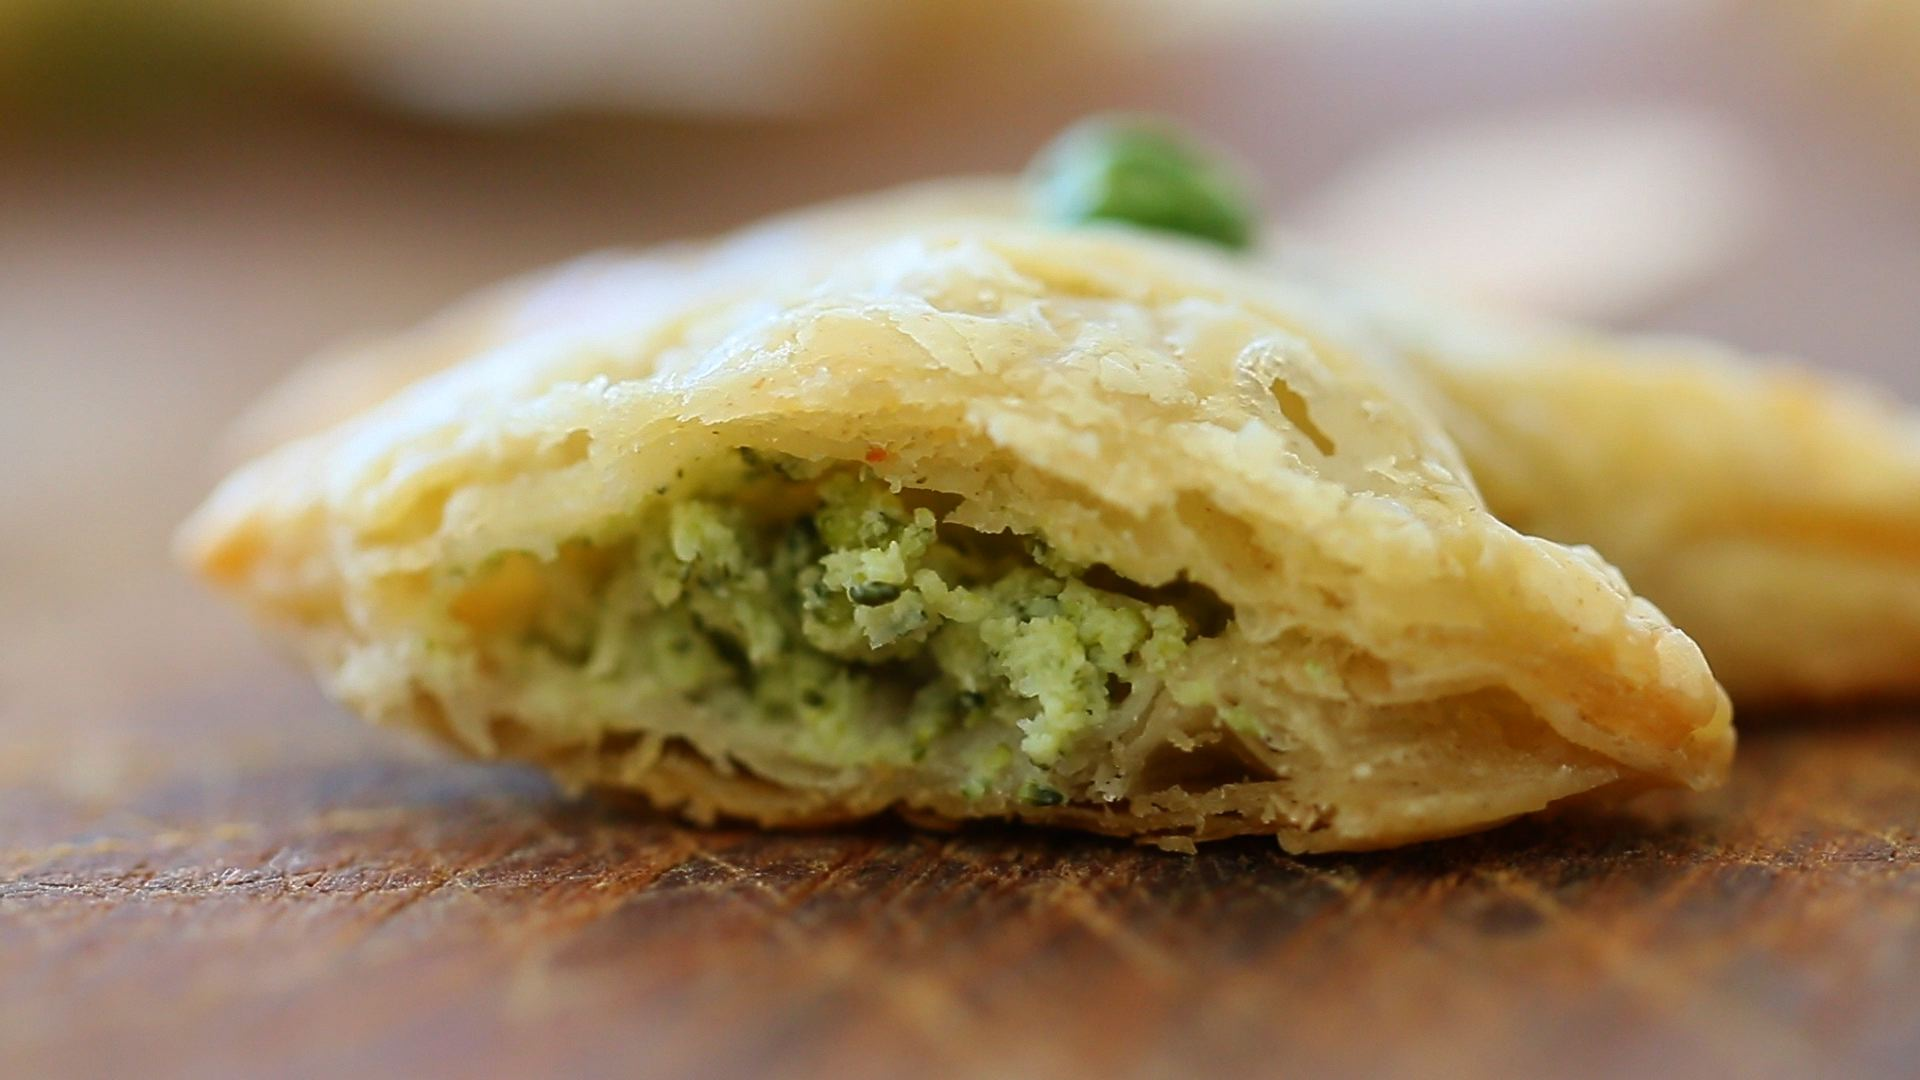 Savory Pastries With Broccoli And Feta Cheese Buona Pappa